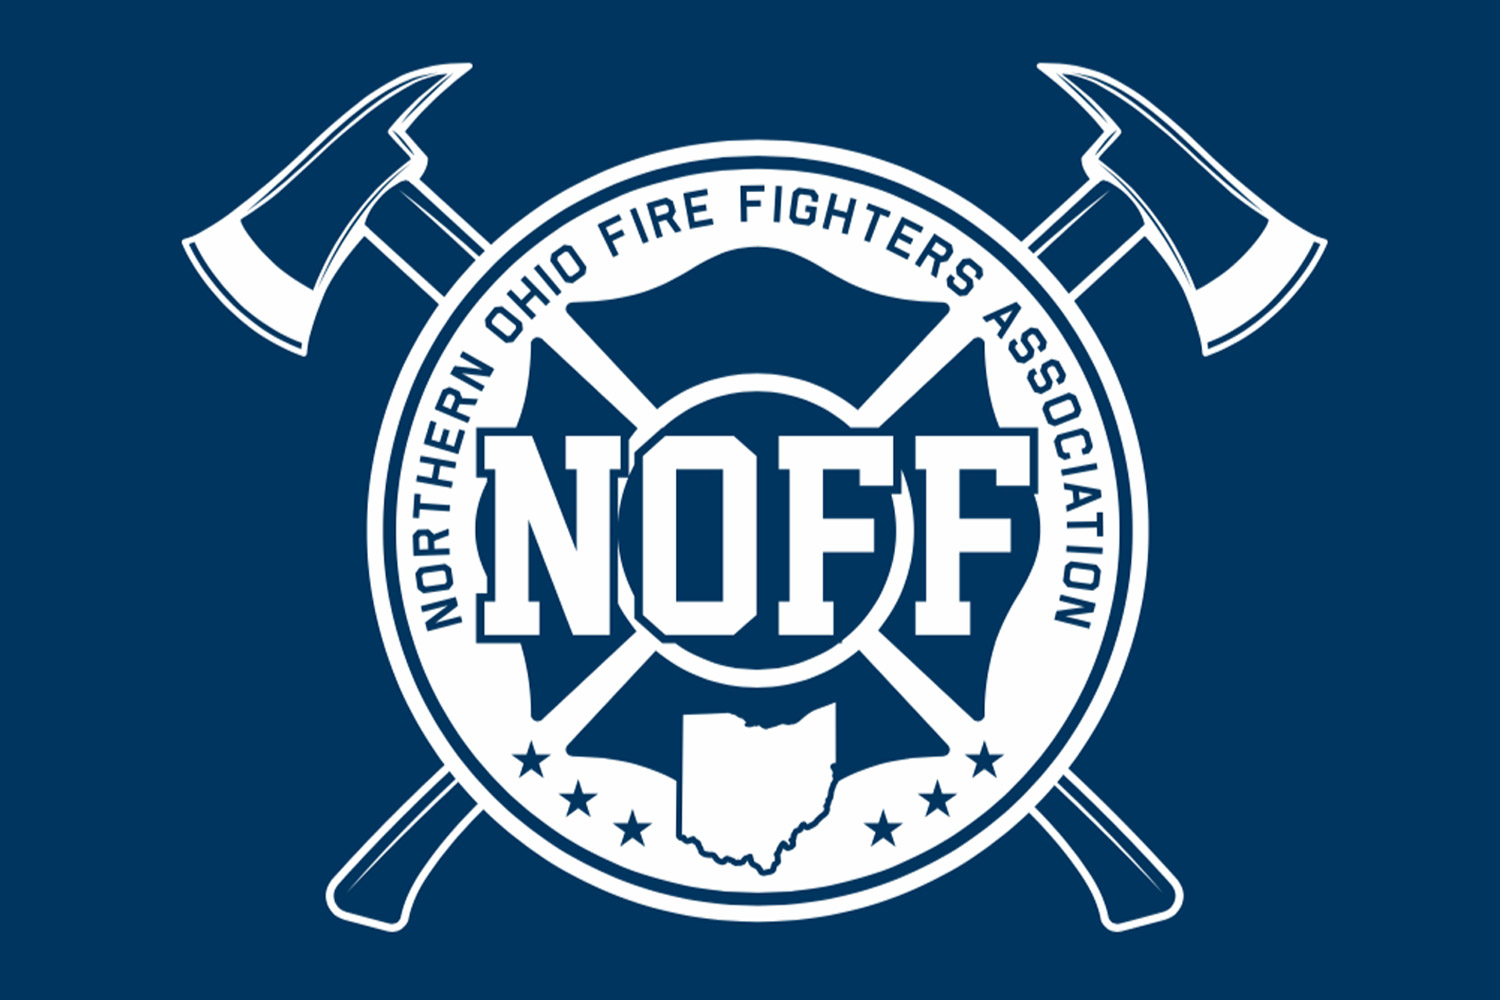 Northern Ohio Firefighters Logo